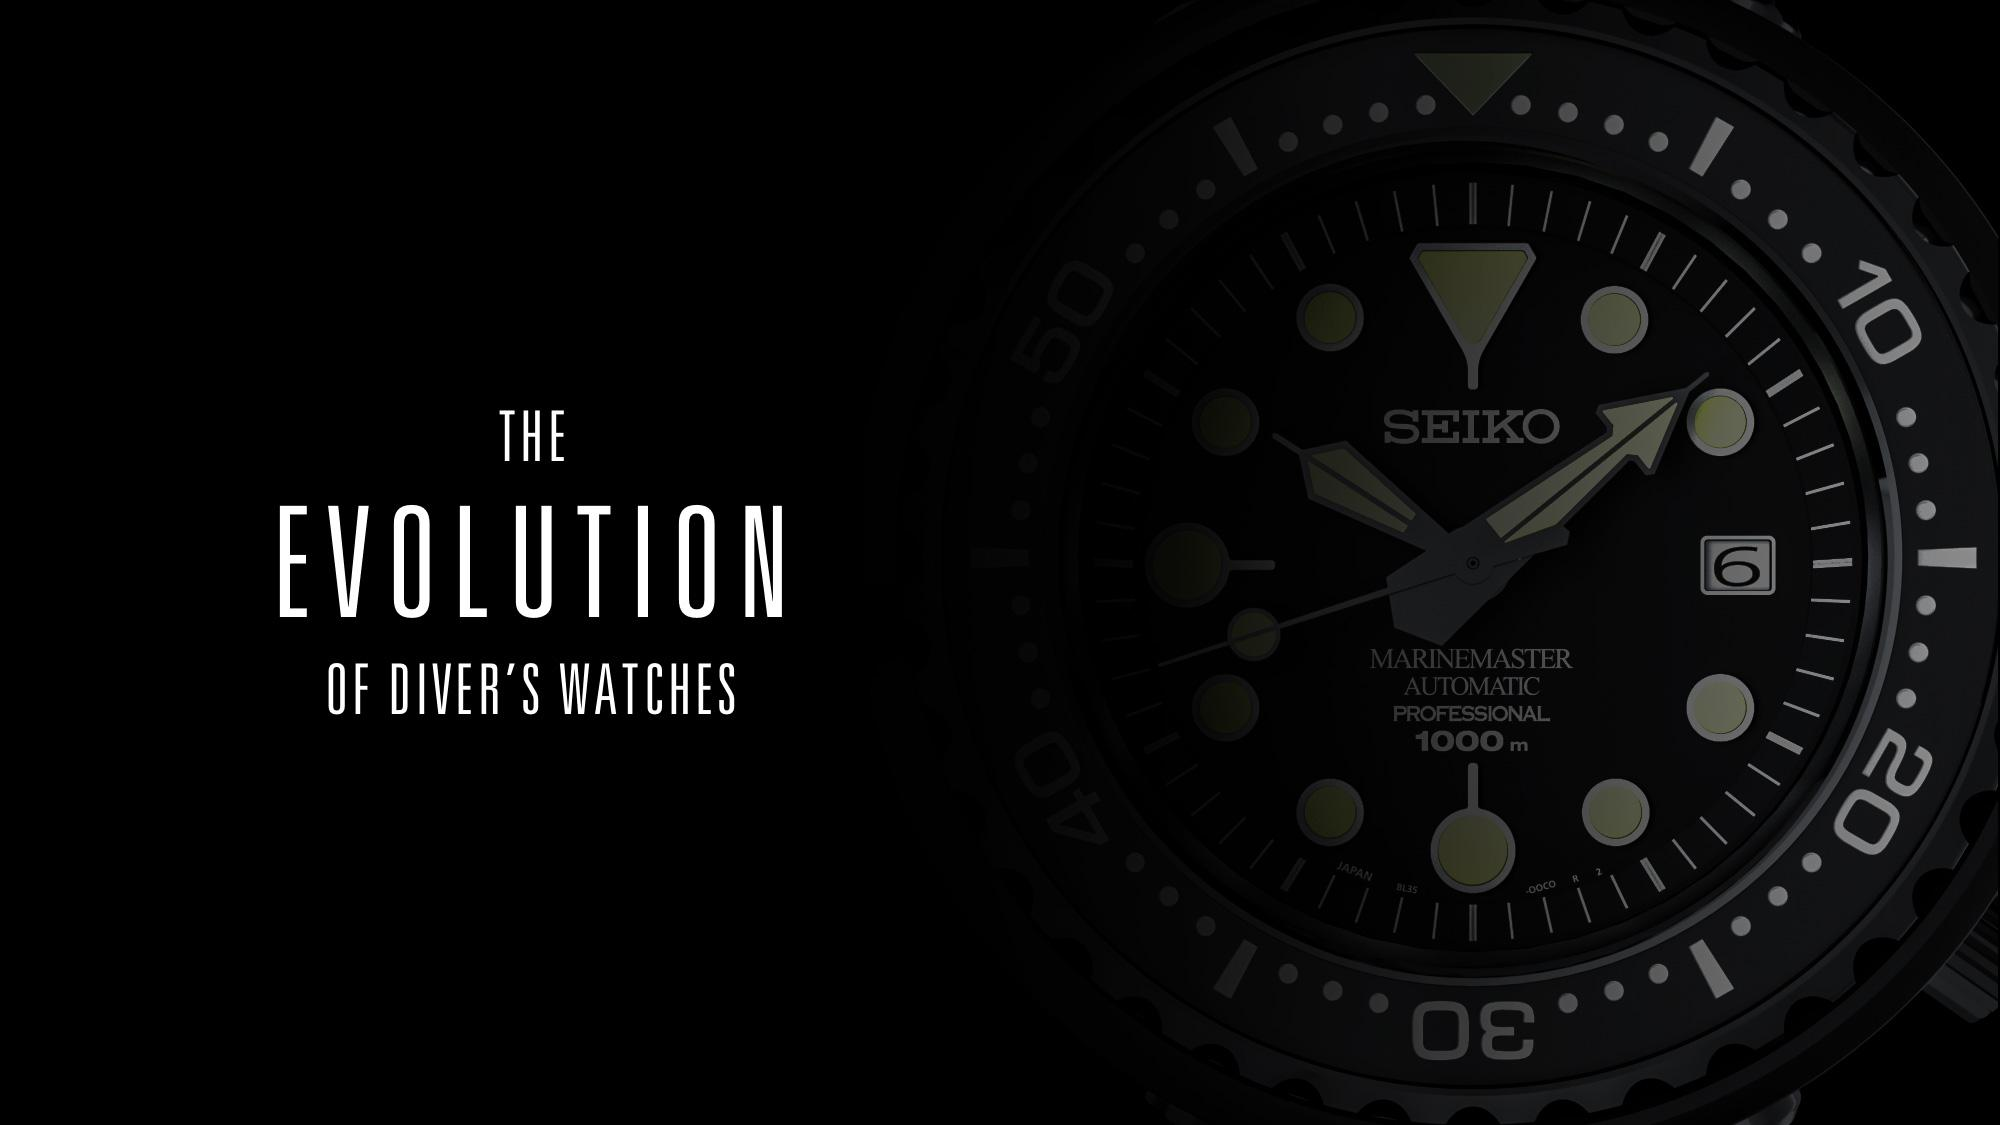 The Evolution of Diver's Watches